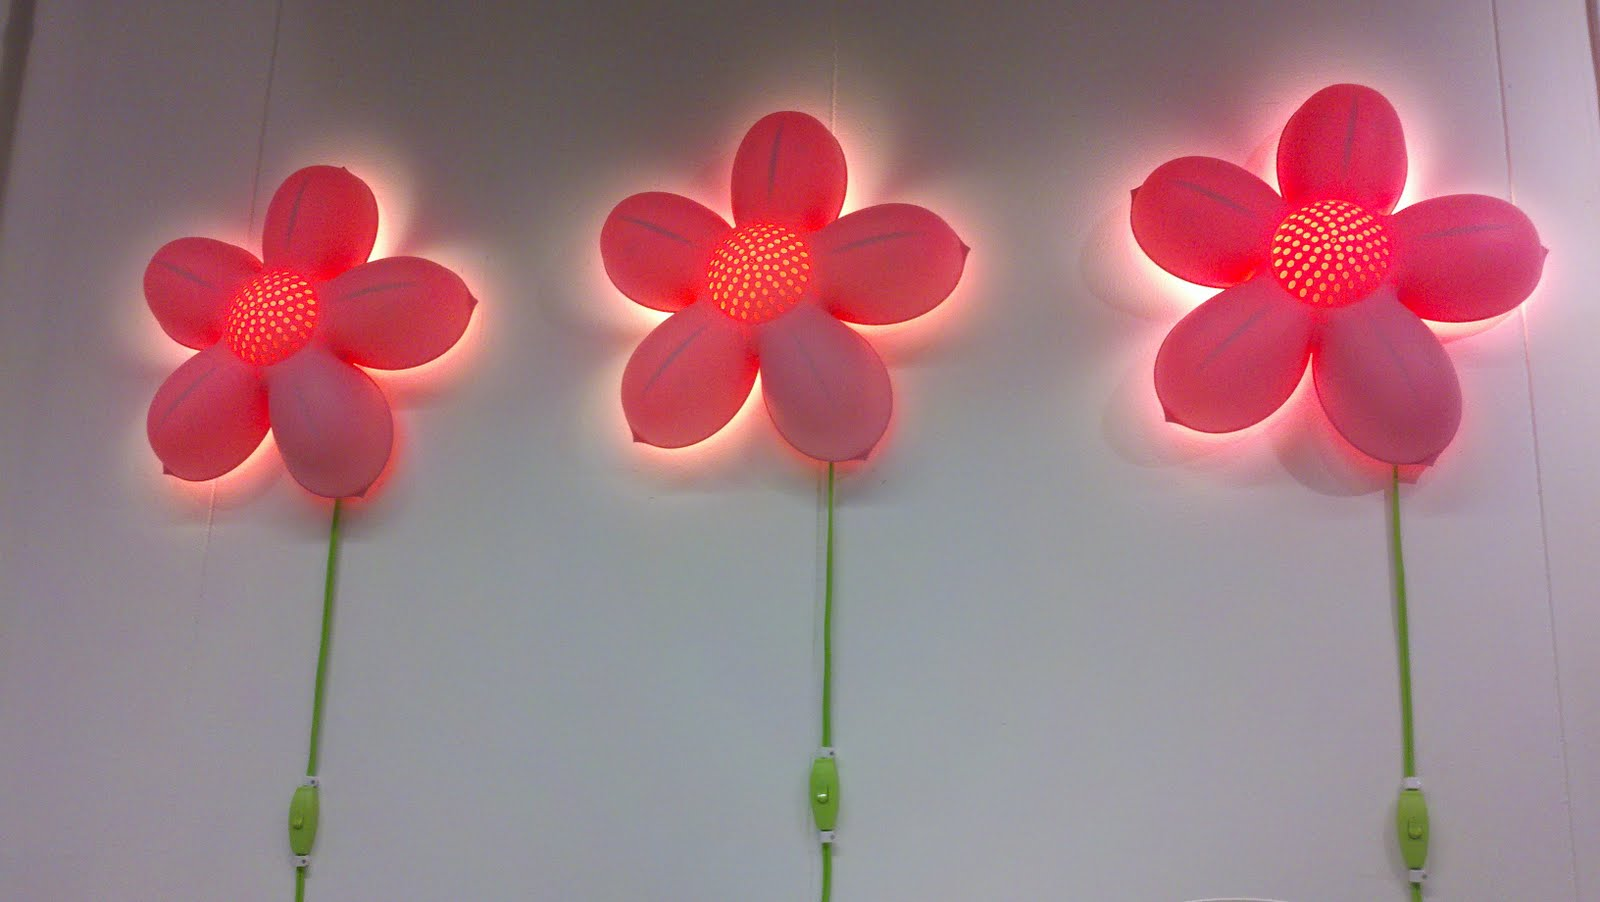 Hello ikea where have you been all my life inspiration for moms arent these the coolest flower lights you have ever seen i knowbut for a little boys roomoh no not so much but i did find him a very cool mightylinksfo